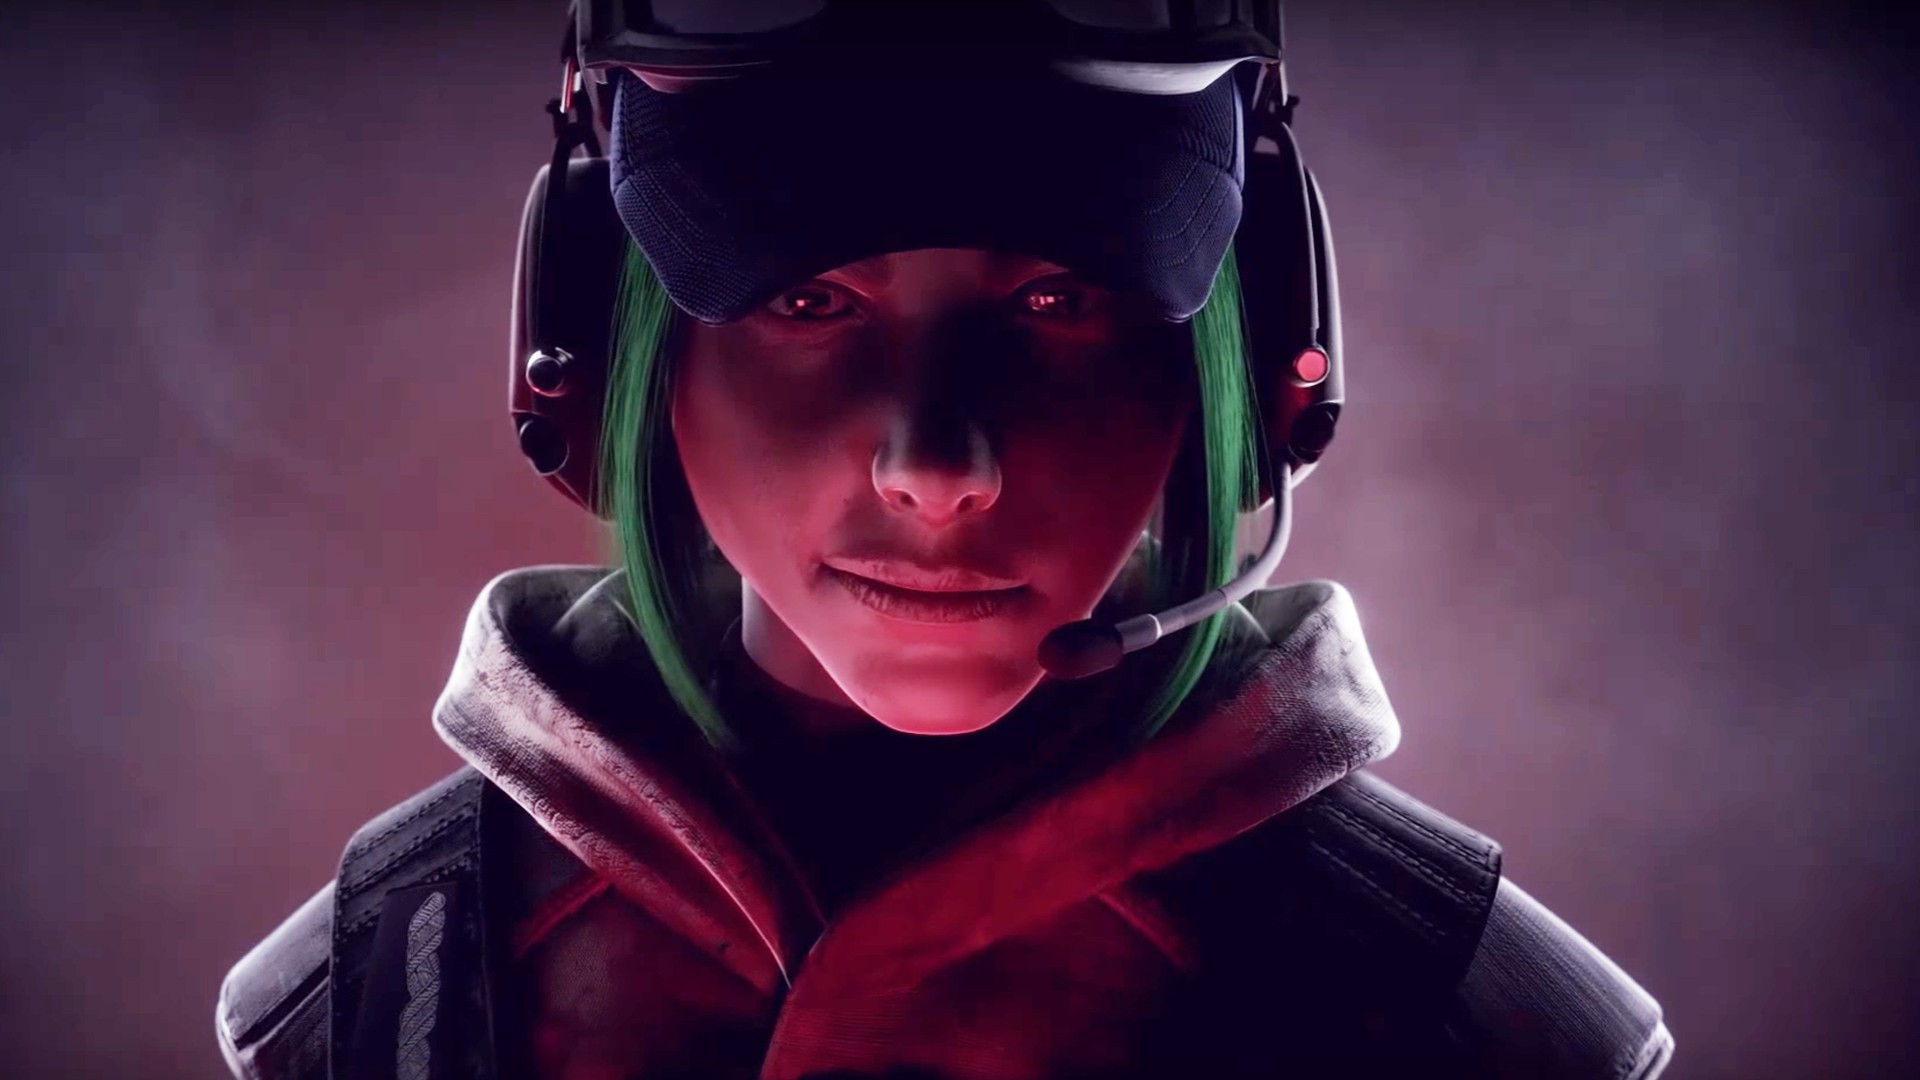 Ela Rainbow Six Siege Wallpaper Posted By Sarah Sellers